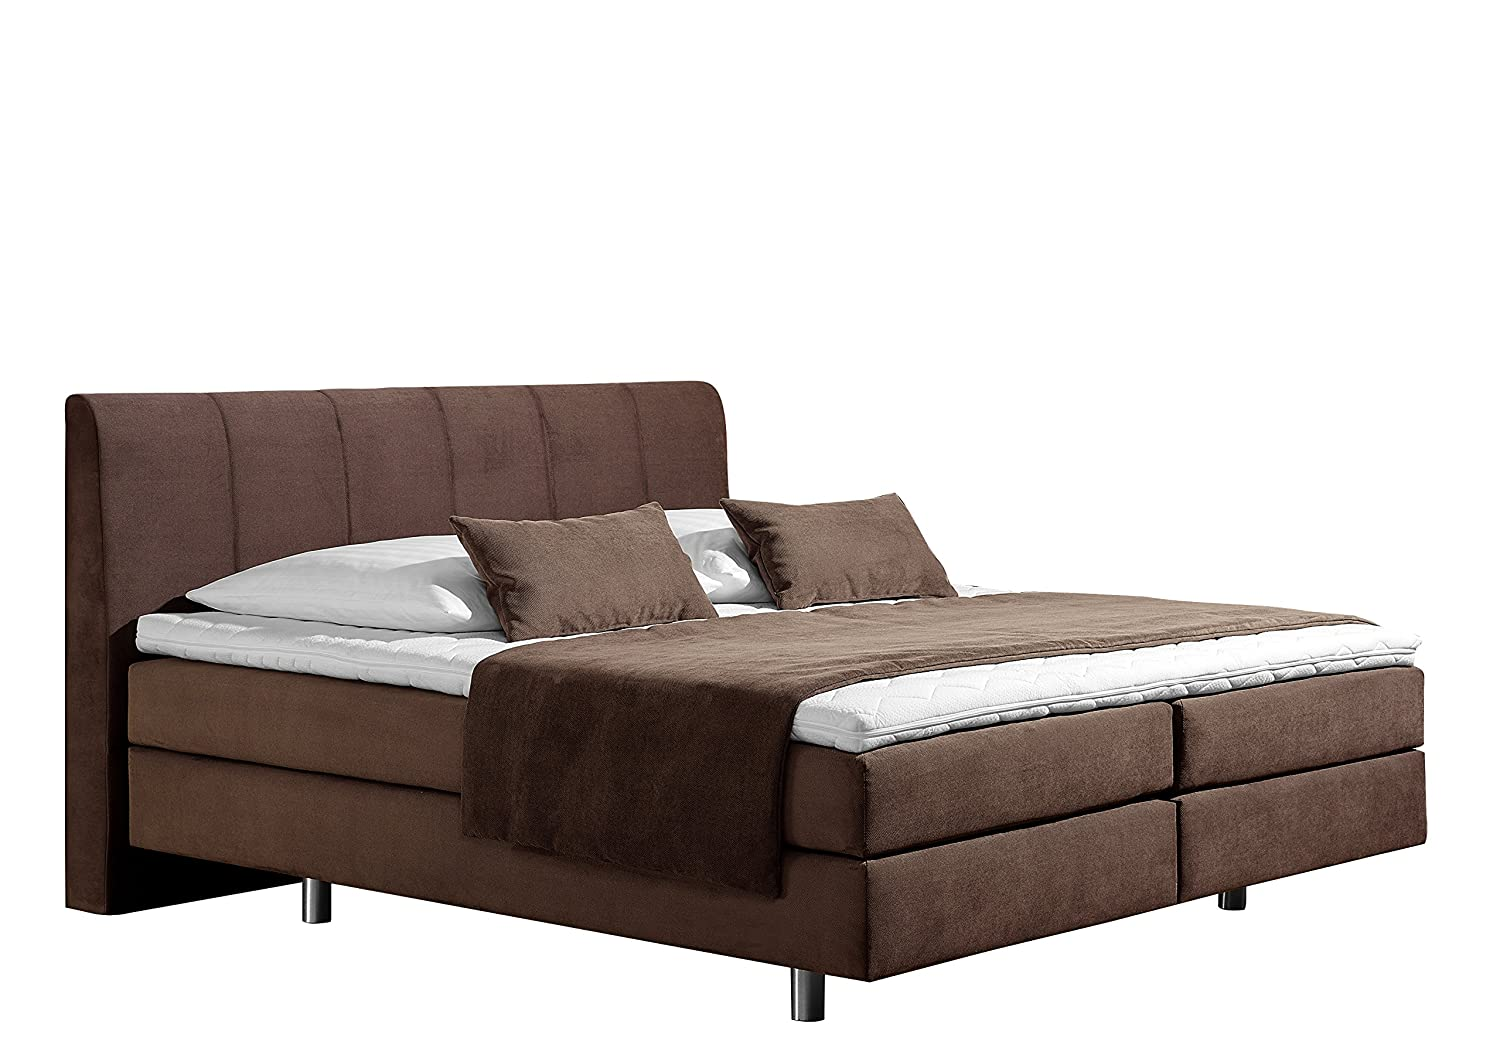 Maintal Betten 237435-4171 Boxspringbett Montepellier 140 x 200 cm, Strukturstoff choco